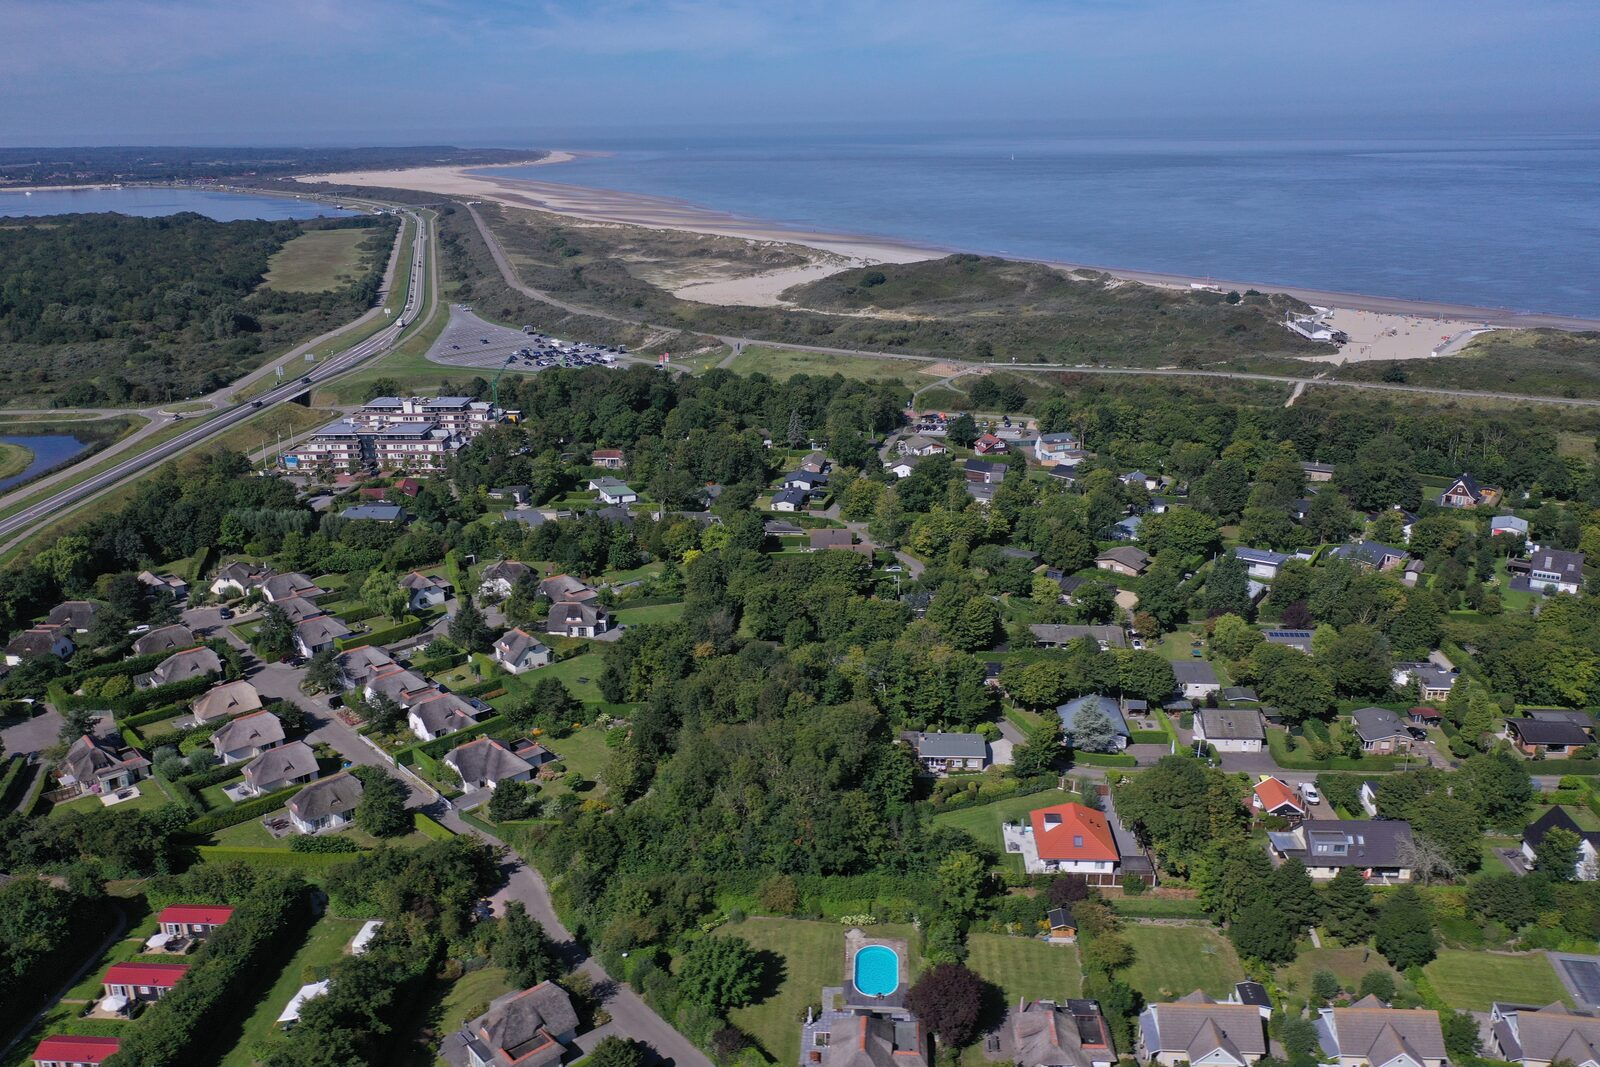 Holiday homes de Banjaard in Zeeland